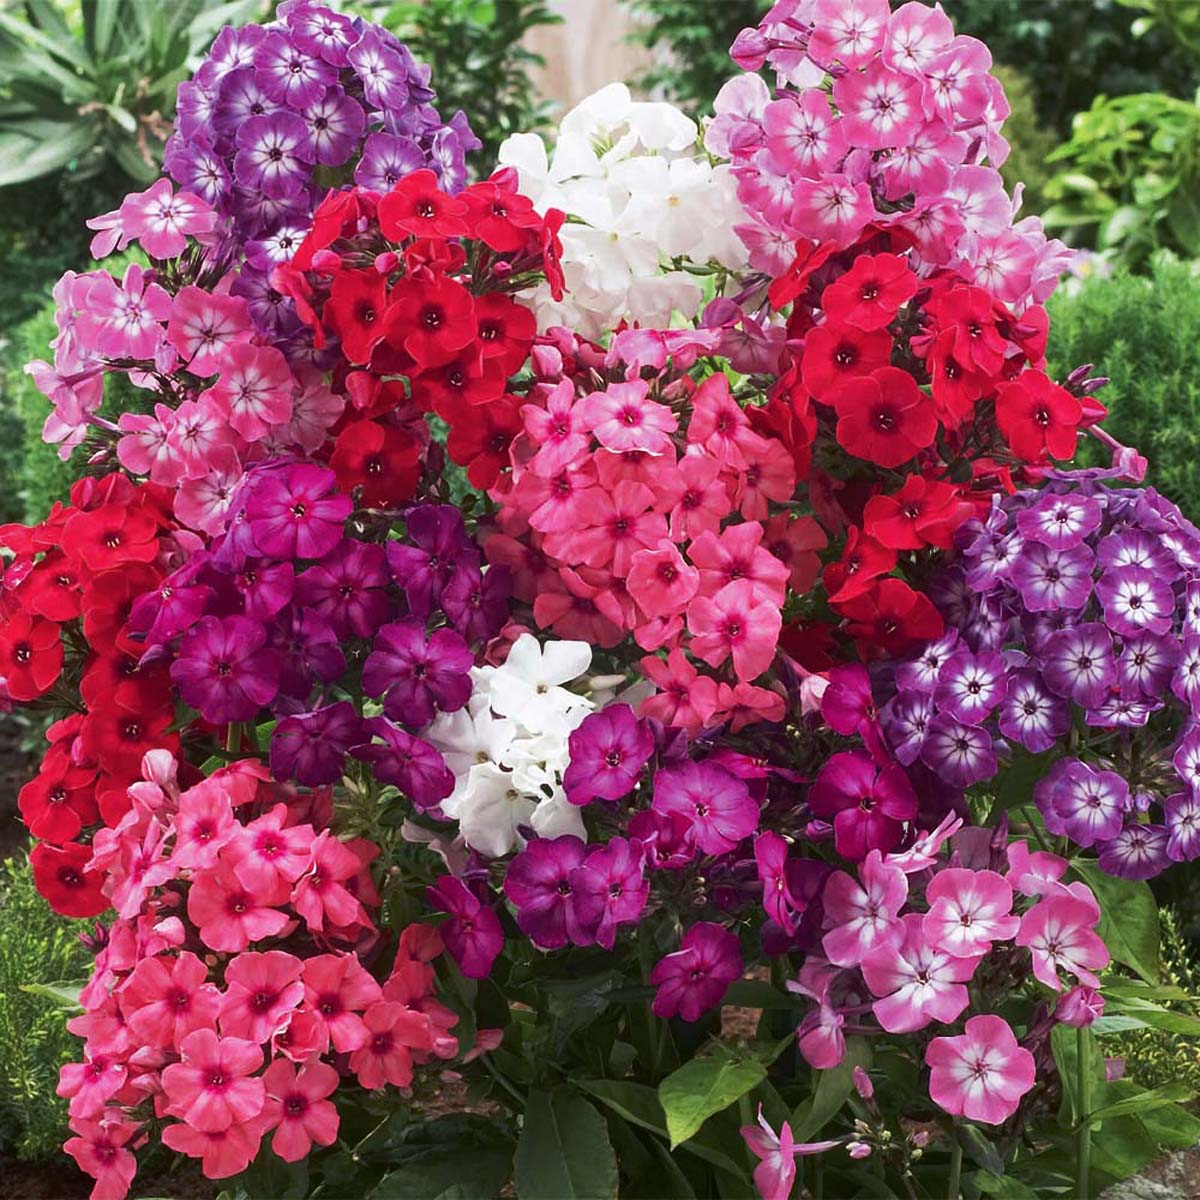 400Pcs PHLOX FLAME CORAL Tall Compact Fragrant Flowers Plant Seeds ...